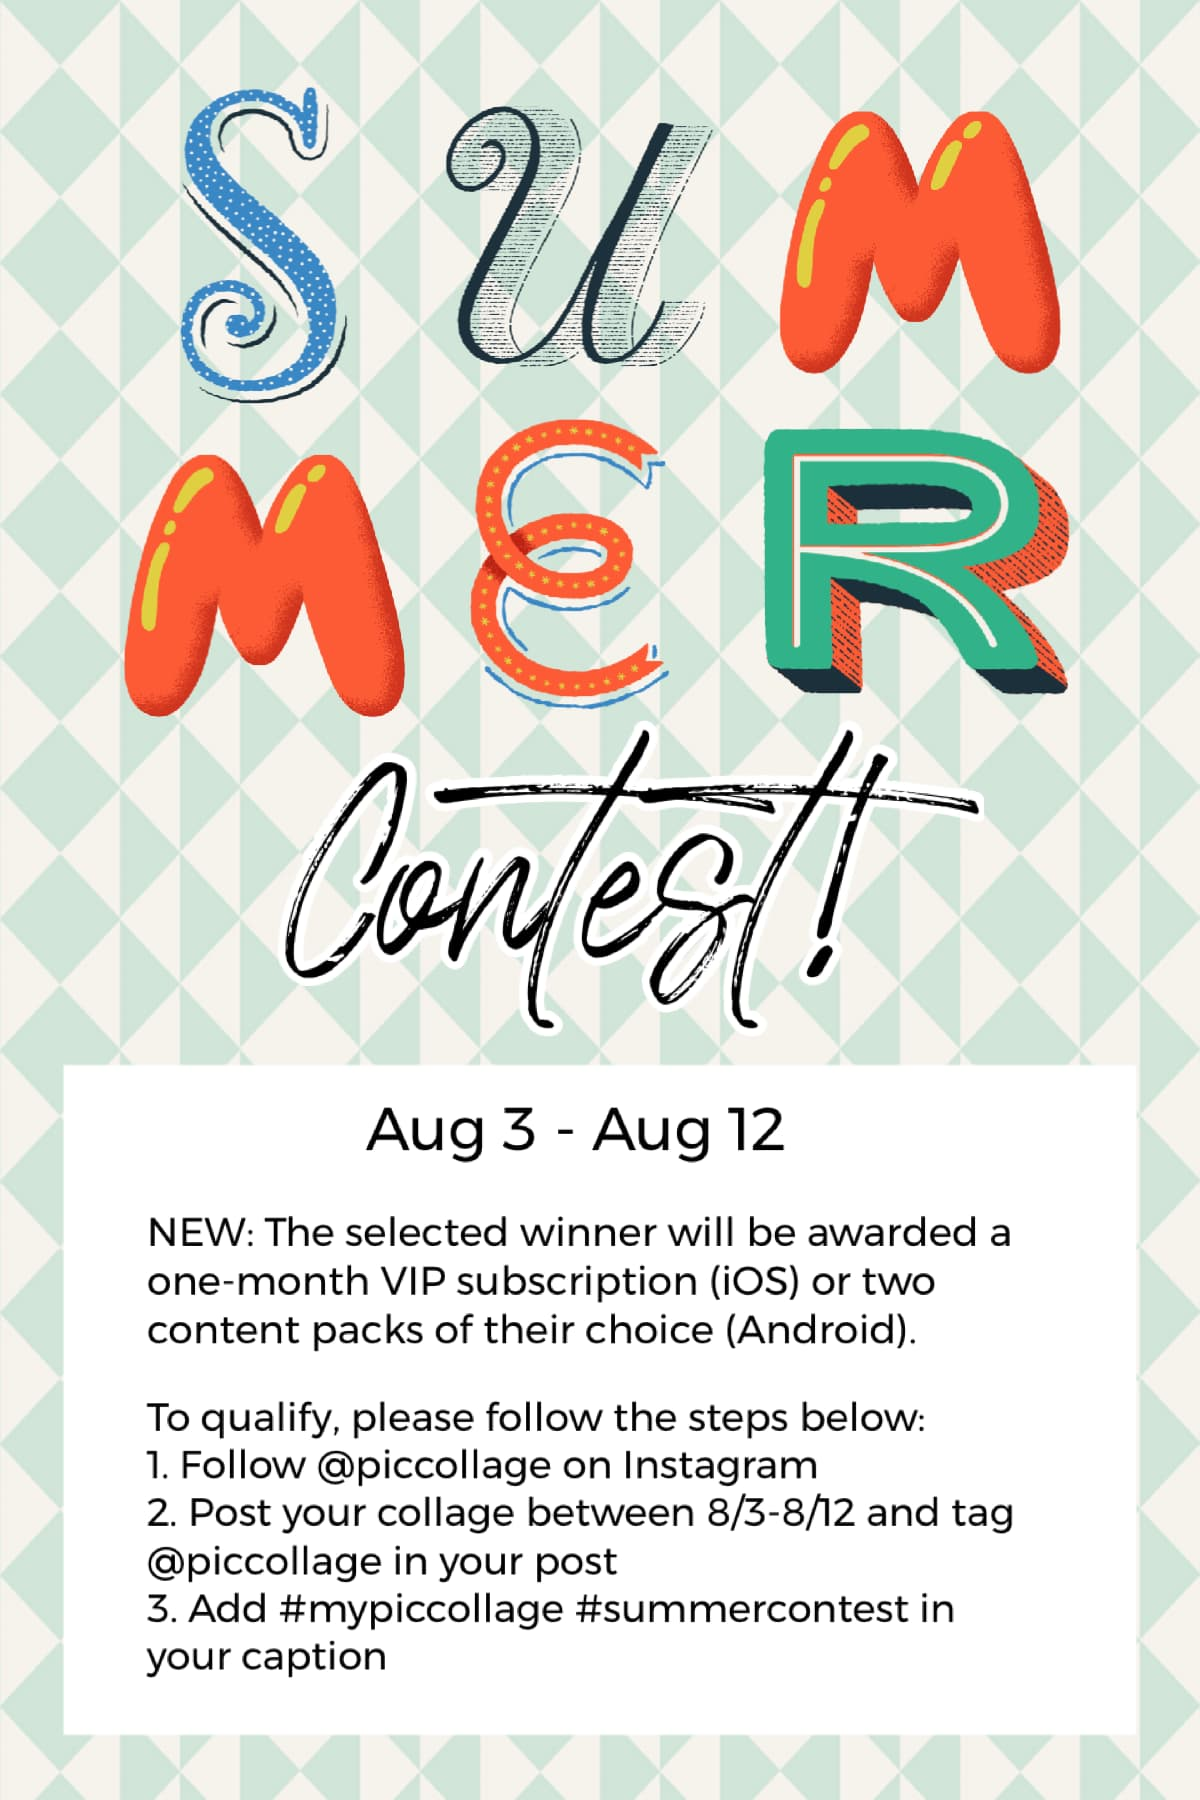 New rules for contests! Show us what summer means to you and see you on IG 😎